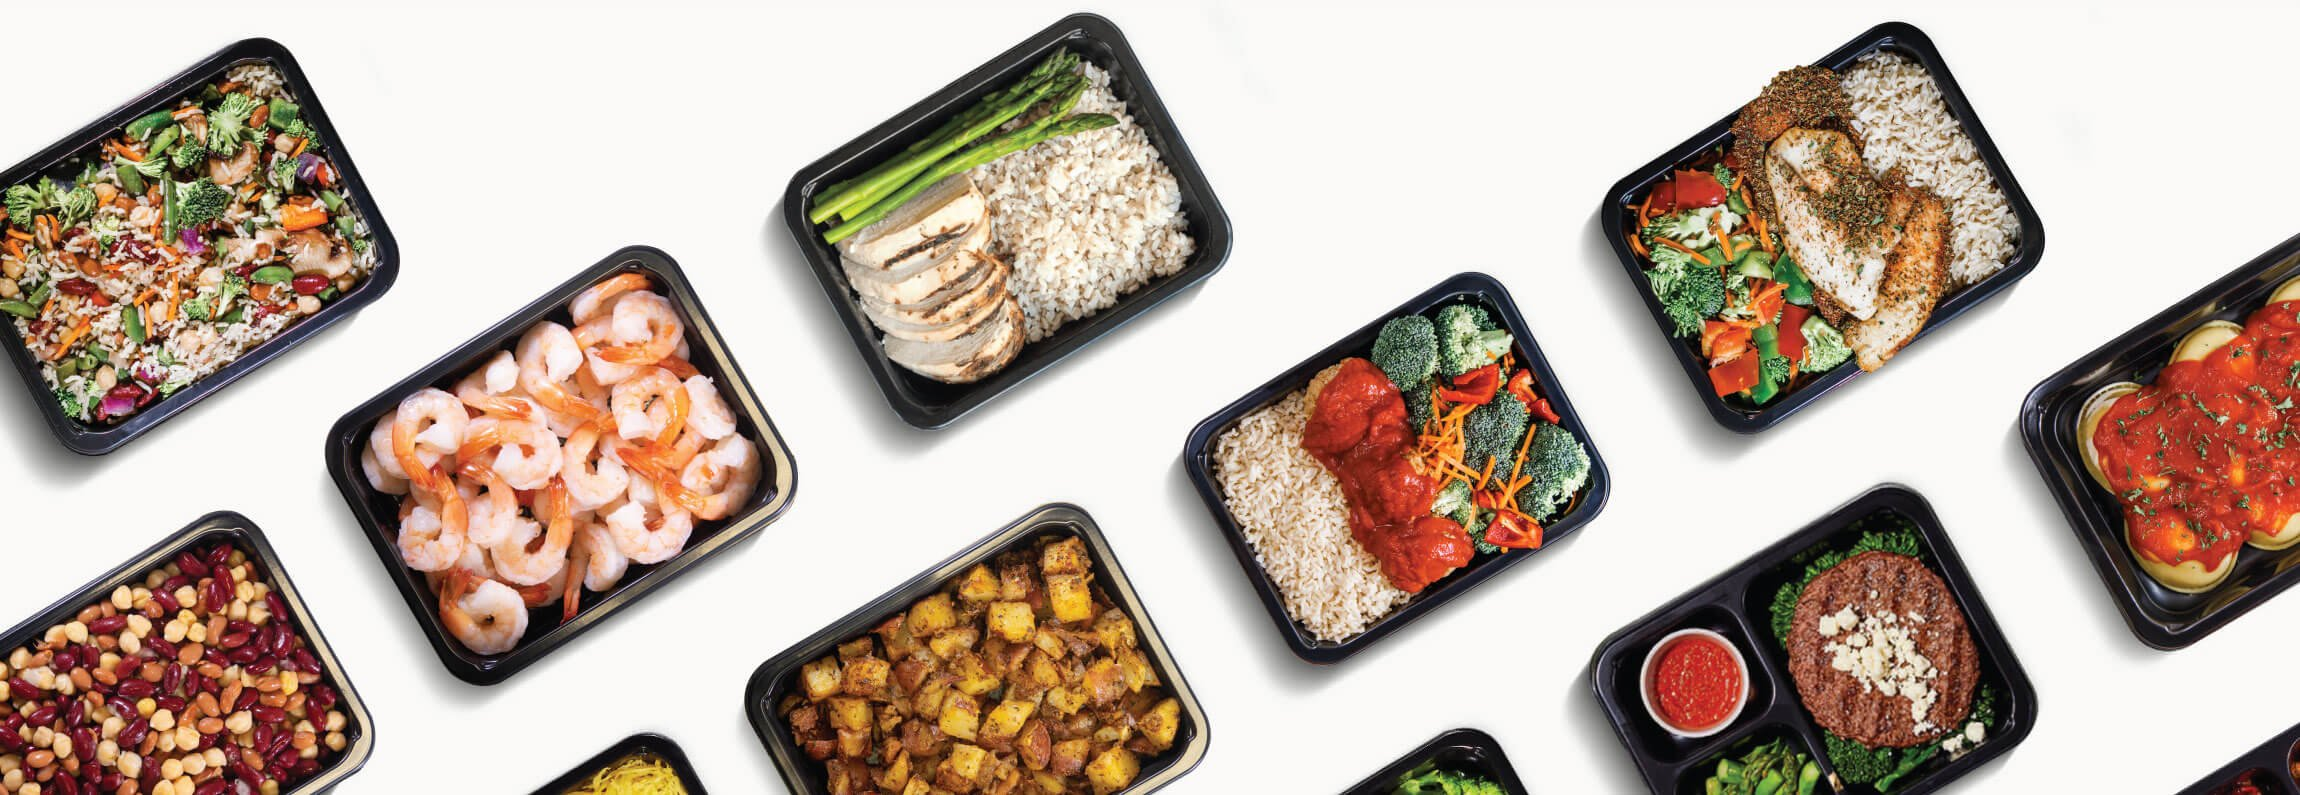 Top down picture of food inside the food container. Perfect healthy Los Angeles bodybuilding meal assortment